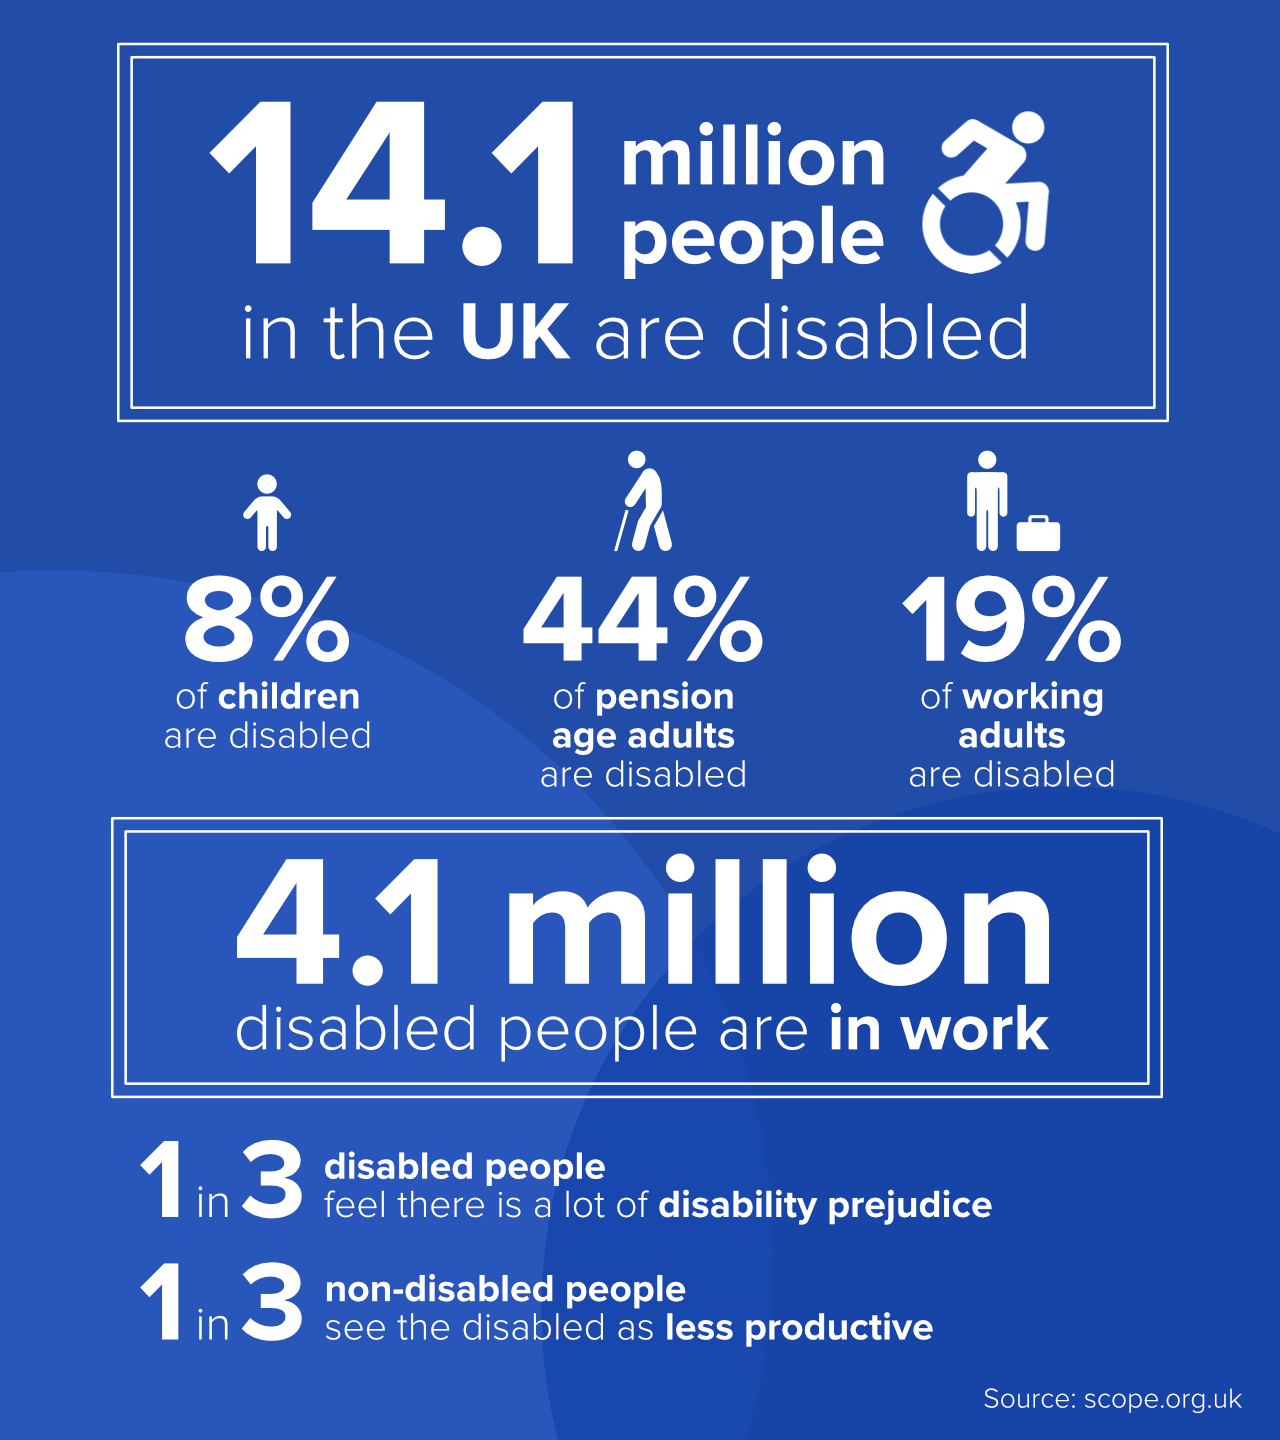 accessibility statistics. data available in the accompanying paragraphs.